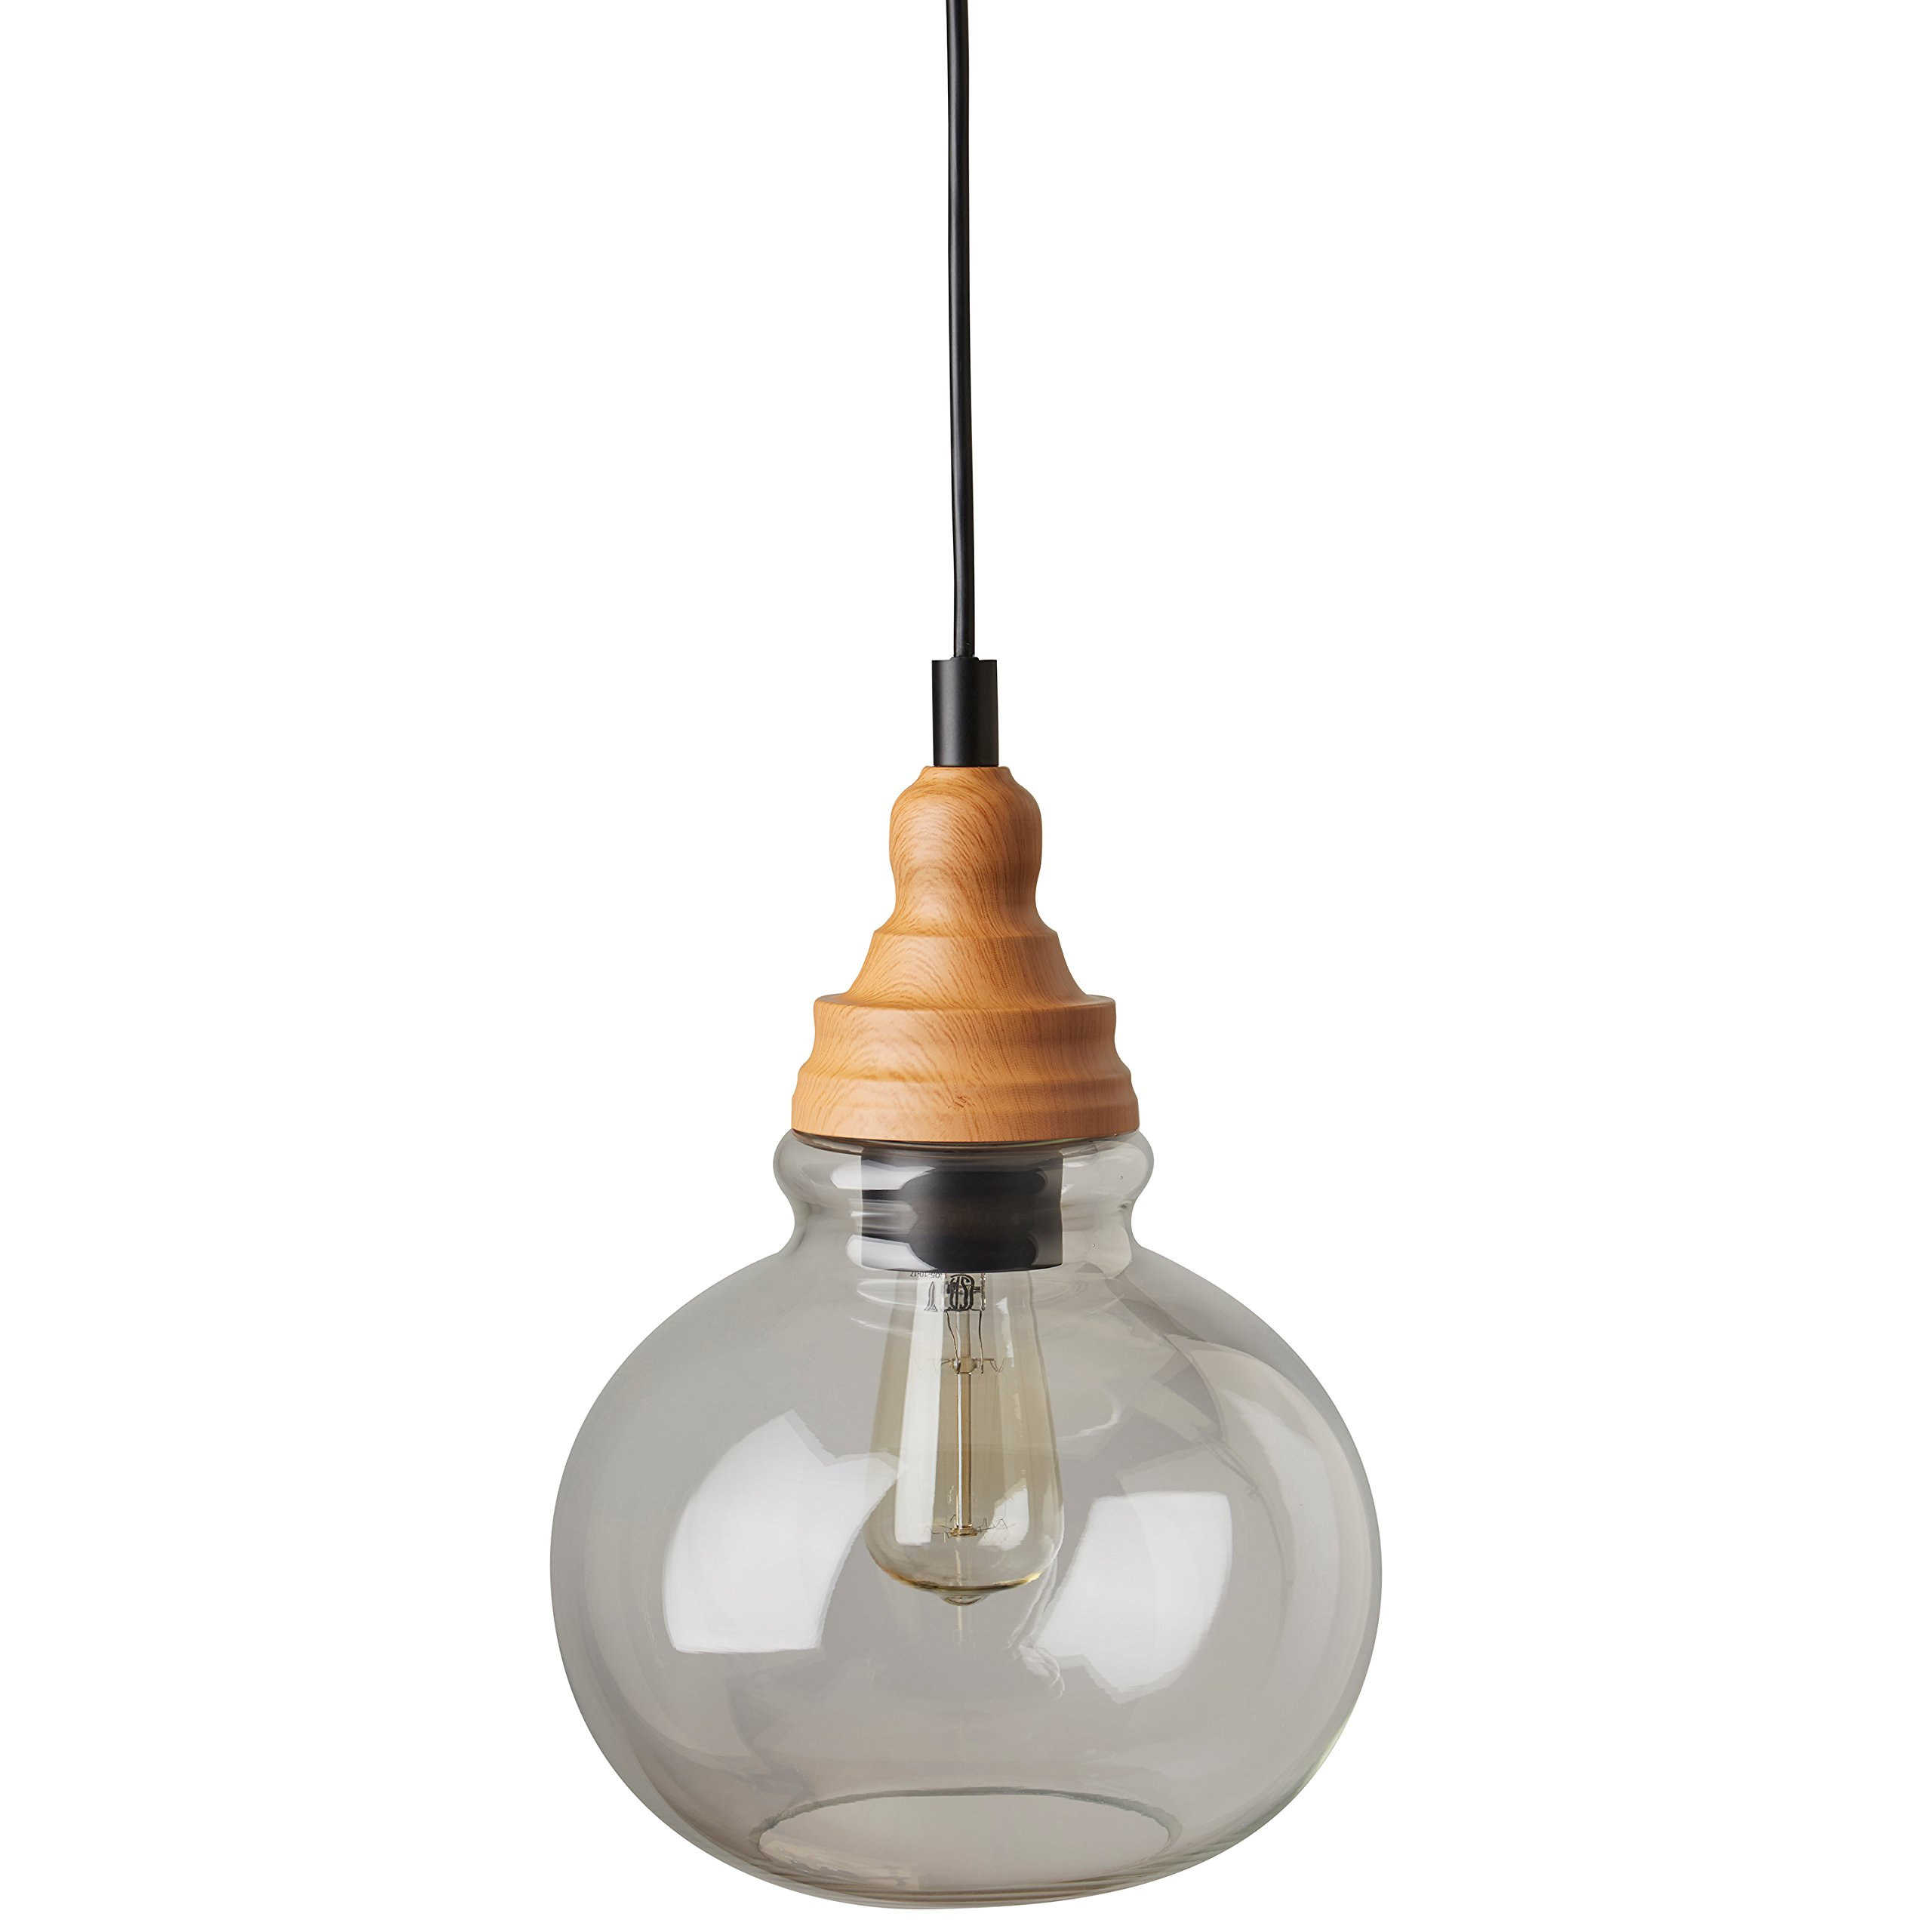 Rivet Glass Pendant With Bulb, 14.25''-60''H, Brown and Black by Rivet (Image #4)